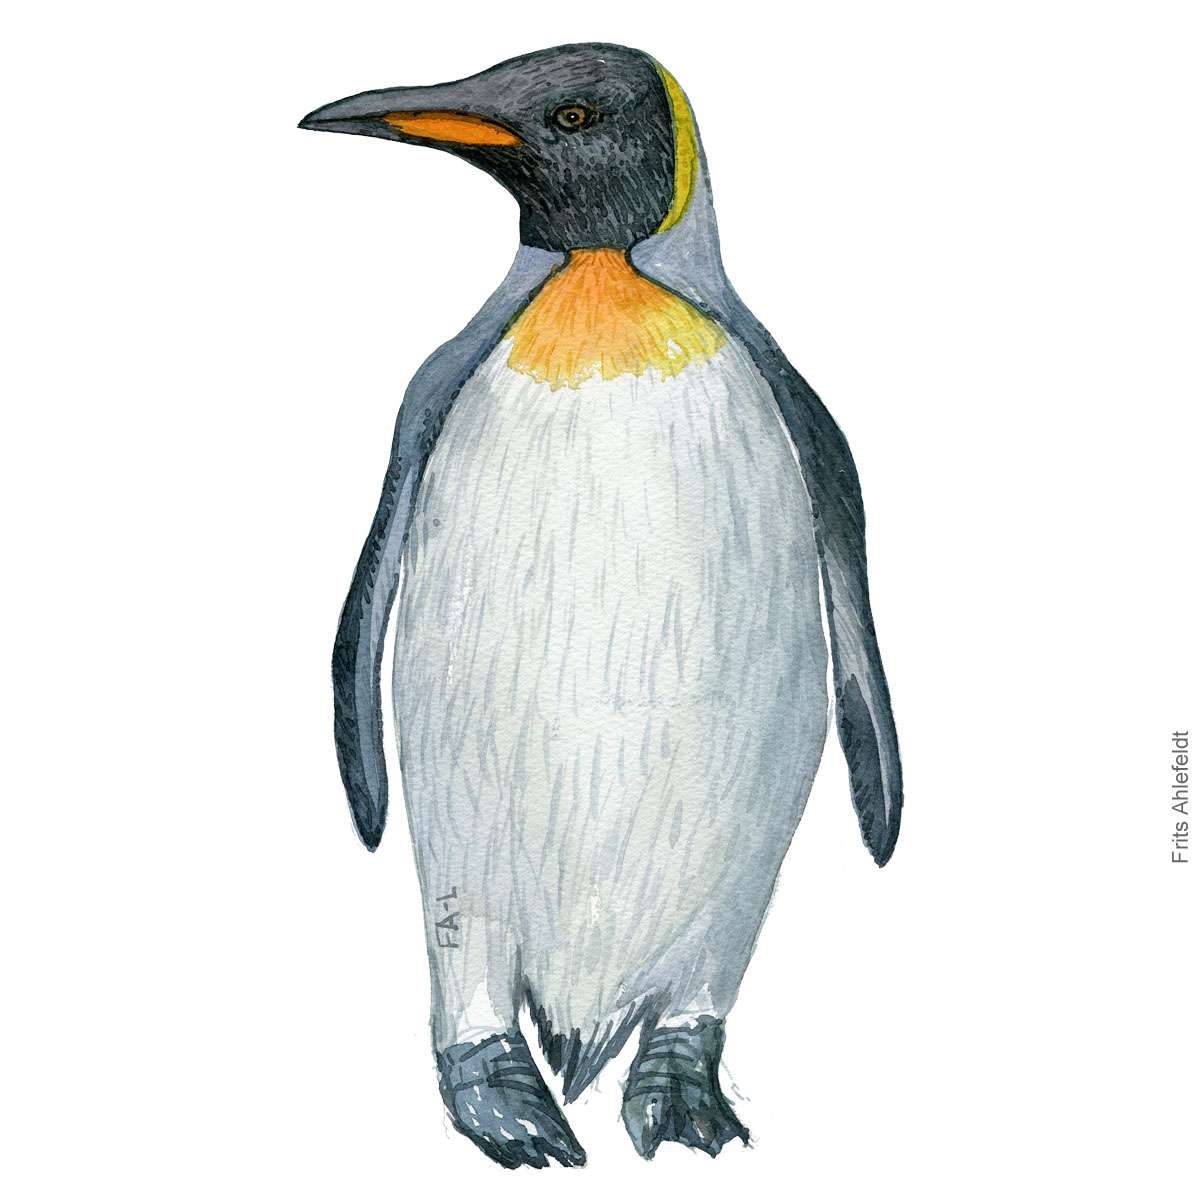 King penguin - Bird painting in watercolor by Frits Ahlefeldt - Fugle akvarel